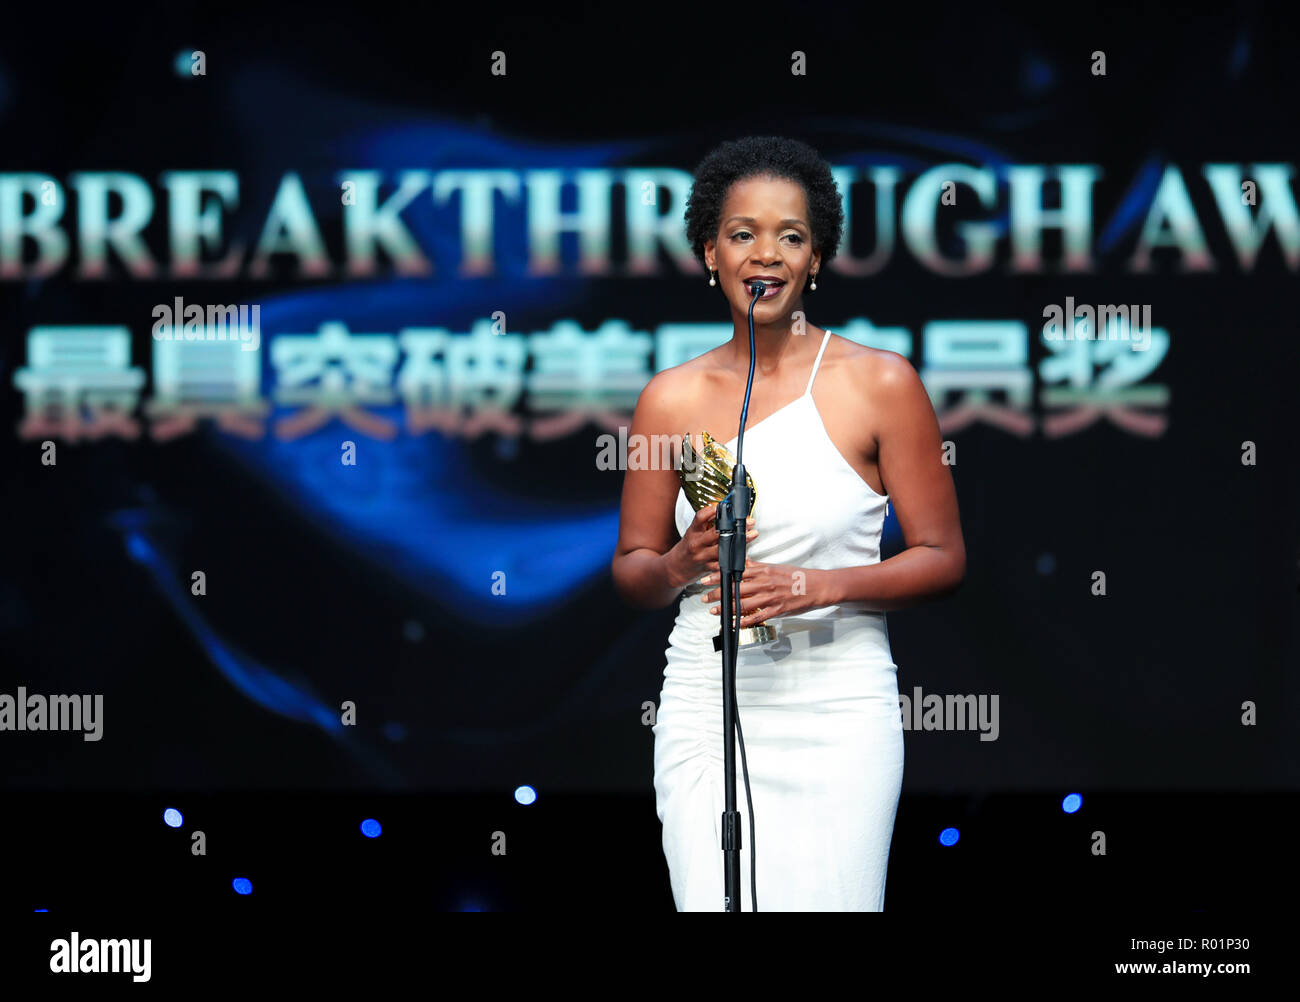 Los Angeles, USA. 30th Oct, 2018. Actress Kelsey Scott who won the Most Influential Award, receives the trophy during the awarding ceremony of the 14th Chinese American Film Festival (CAFF) in Los Angeles, the United States, Oct. 30, 2018. The 14th Chinese American Film Festival (CAFF) kicked off Tuesday at the Ricardo Montalban Theater in Hollywood in the U.S. city of Los Angeles. Credit: Li Ying/Xinhua/Alamy Live News - Stock Image